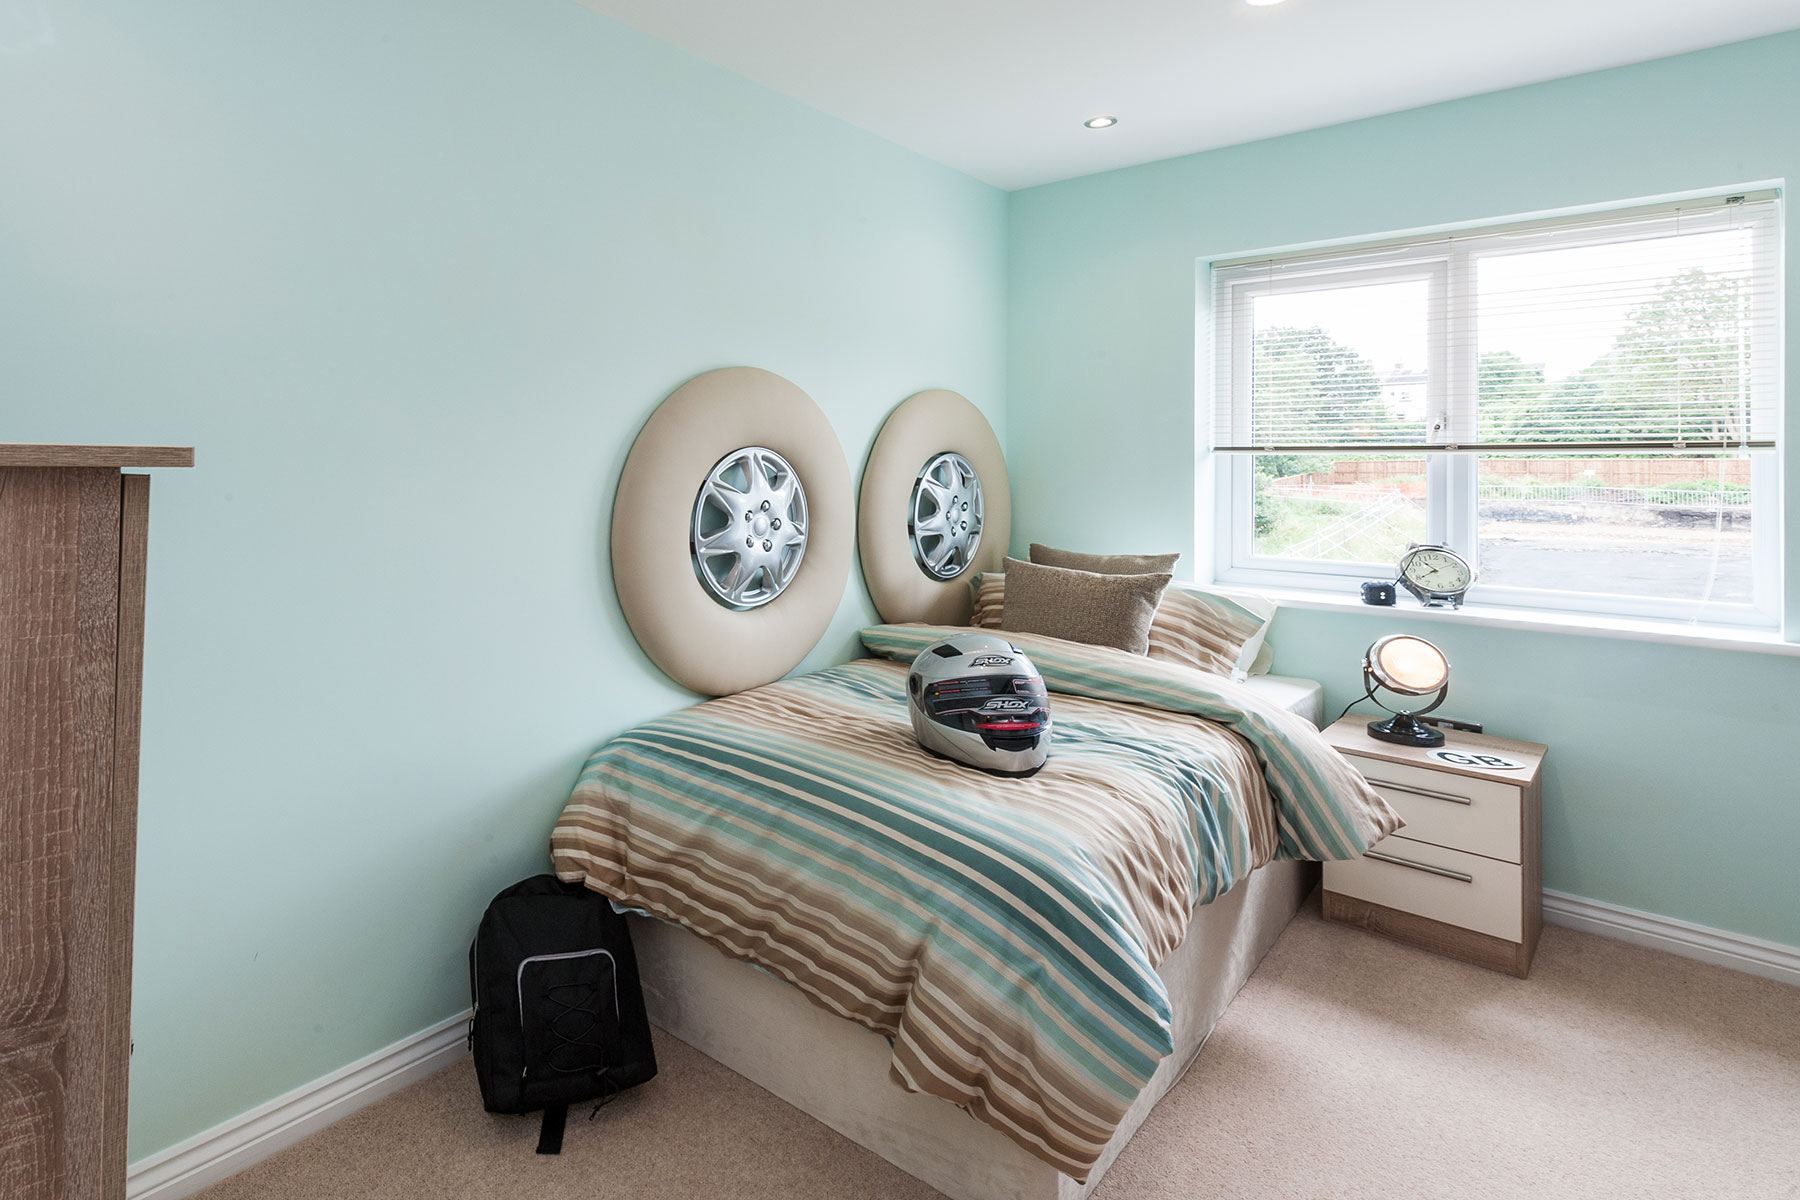 Typical Taylor Wimpey bedroom